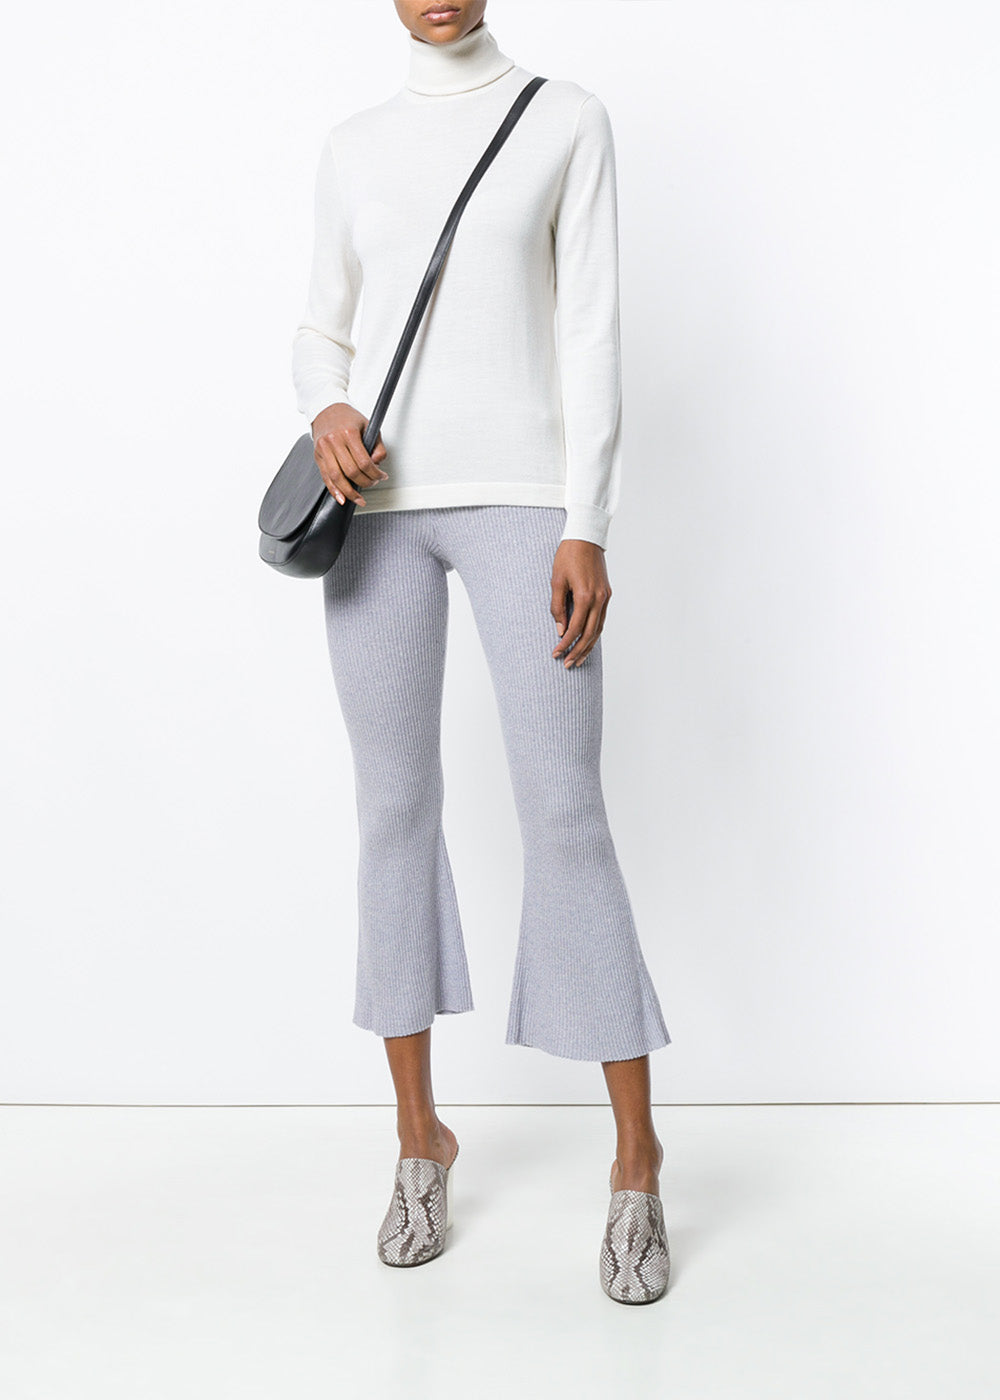 Candiss Knit Trousers